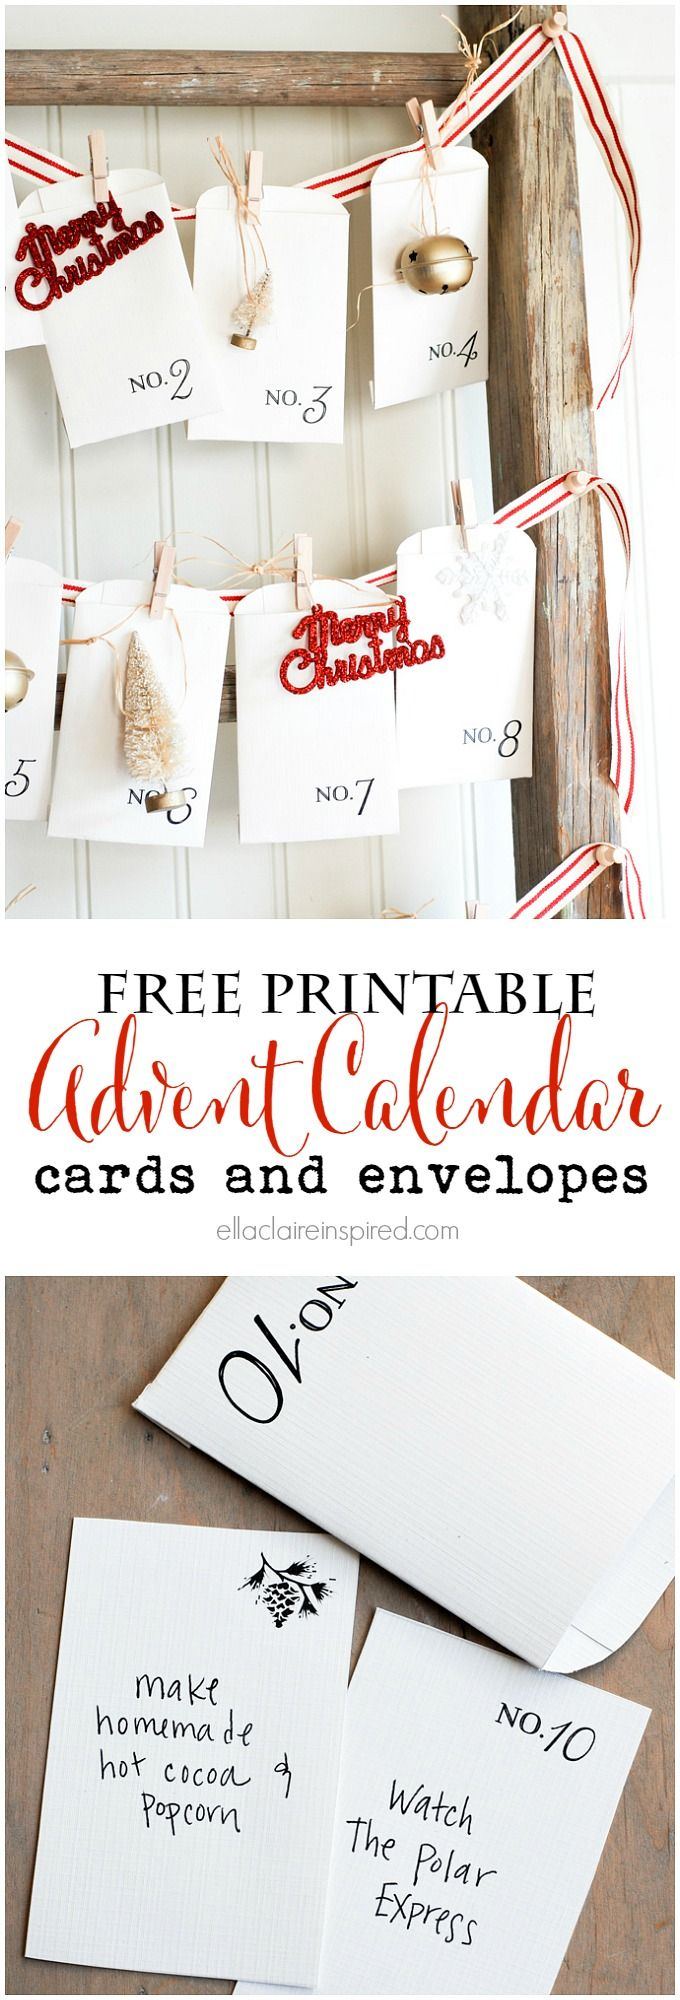 Free Printable Vintage-Inspired Advent Calendar cards and envelopes. I love vintage Christmas! by Ella Claire